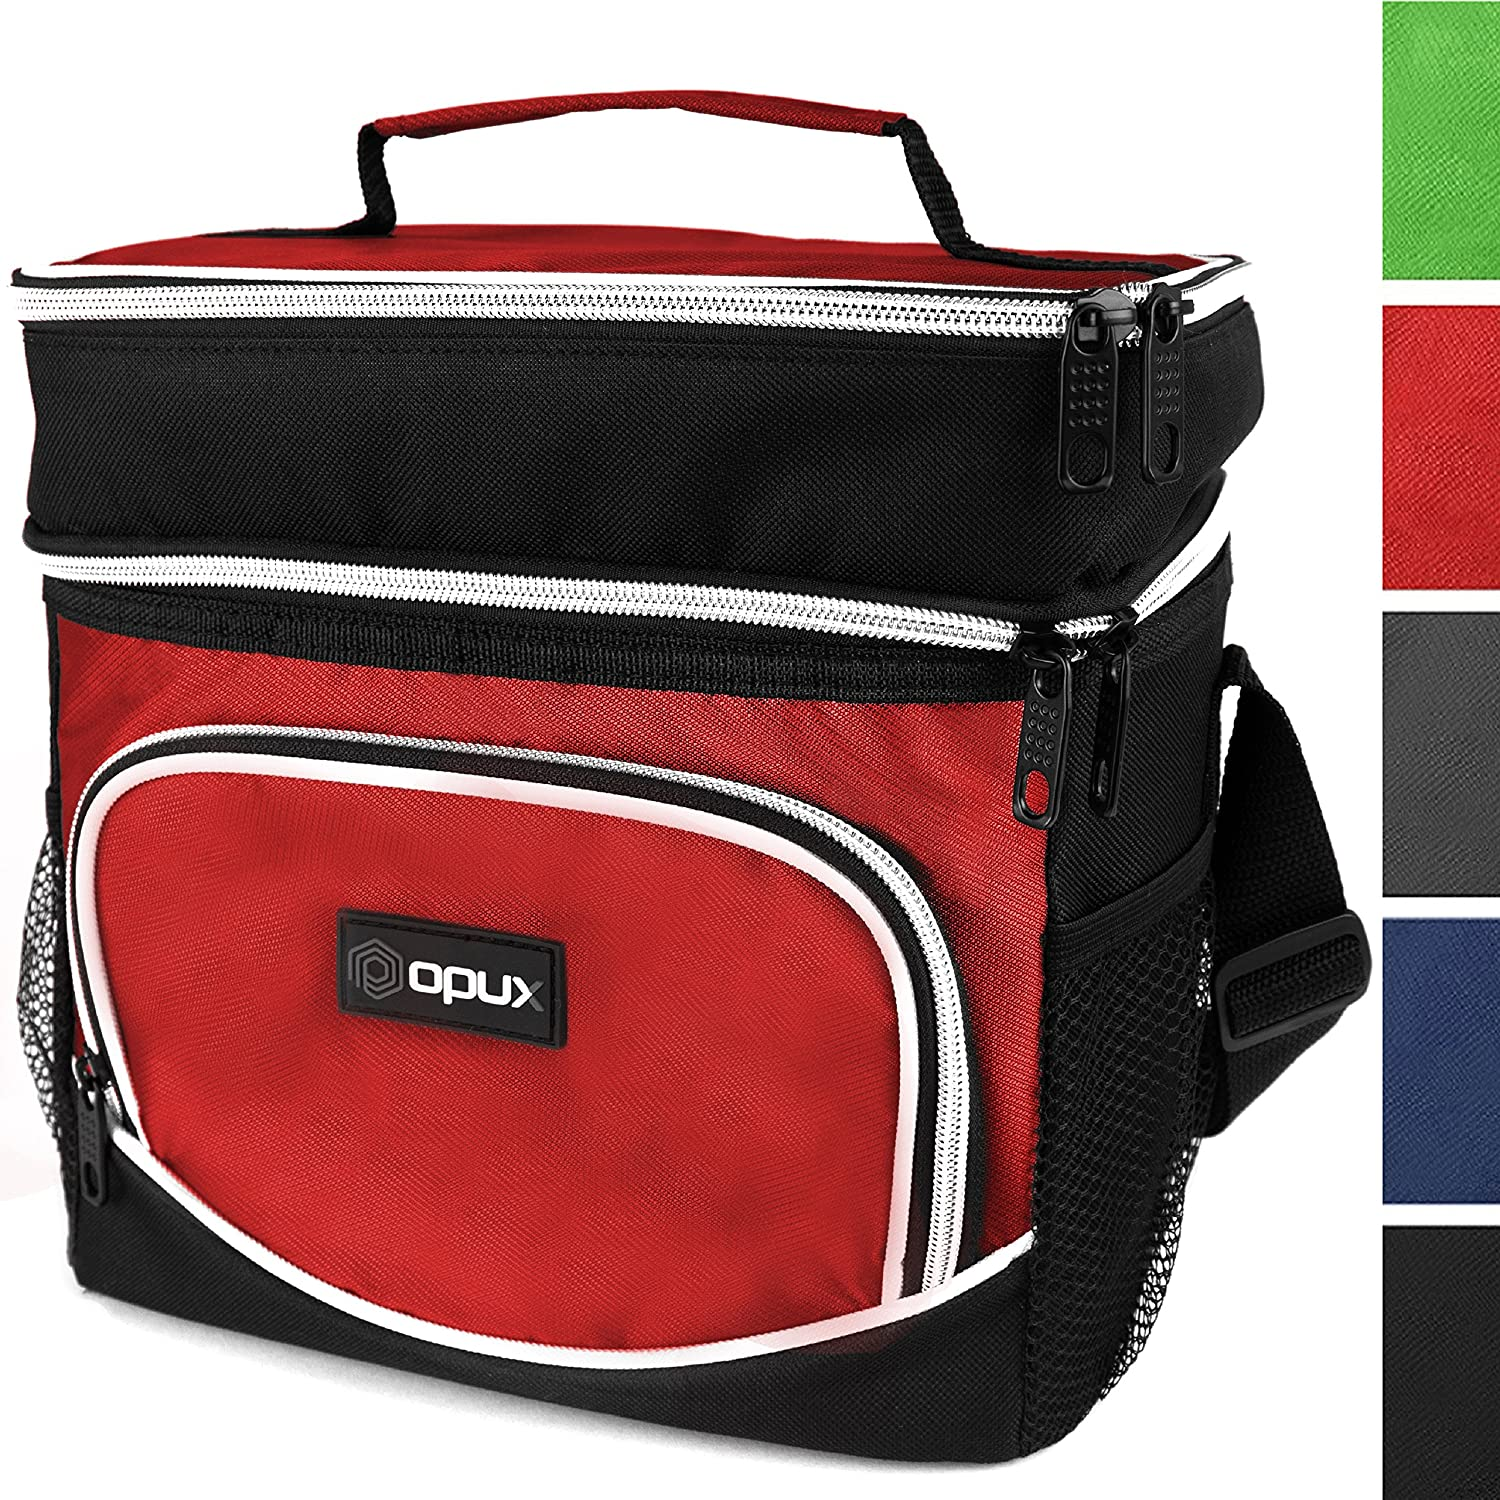 OPUX Premium Thermal Insulated Dual Compartment Lunch Bag for Men   Double Deck Reusable Lunch Tote with Shoulder Strap, Bottle Holder, Soft Leakproof Liner   Medium Lunch Box for Work, Office (Black)